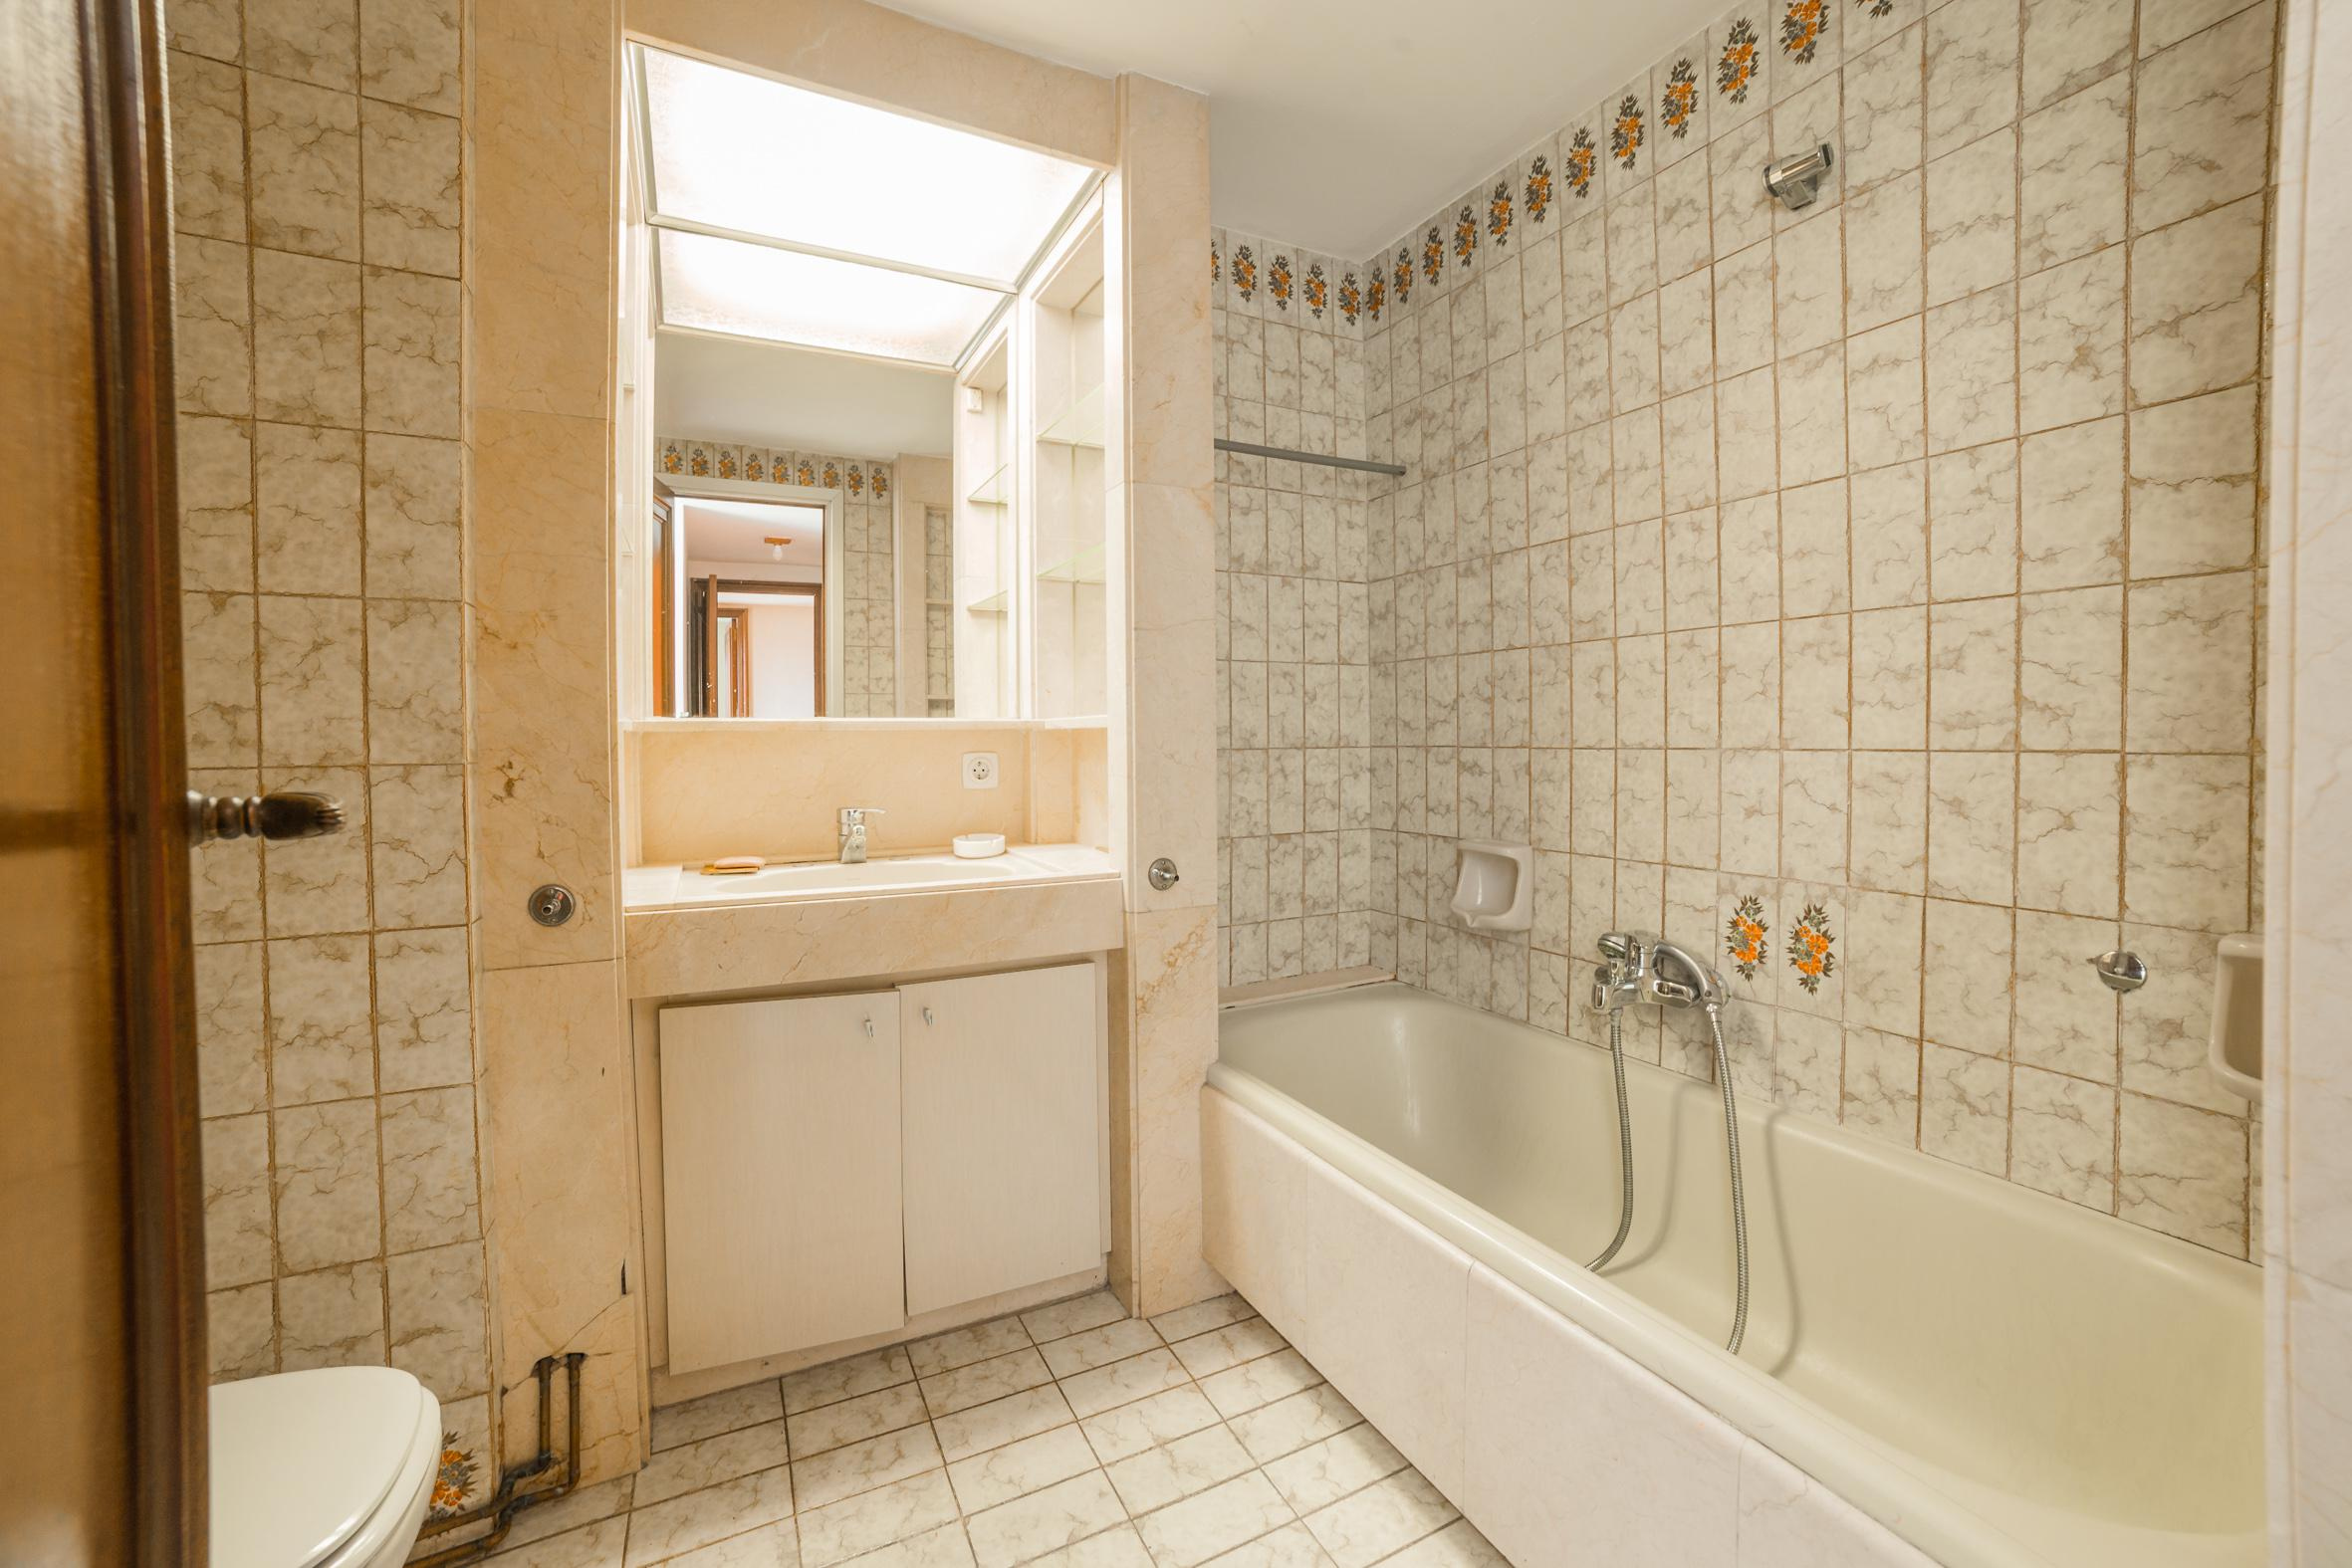 248988 Flat for sale in Les Corts, Les Corts 27